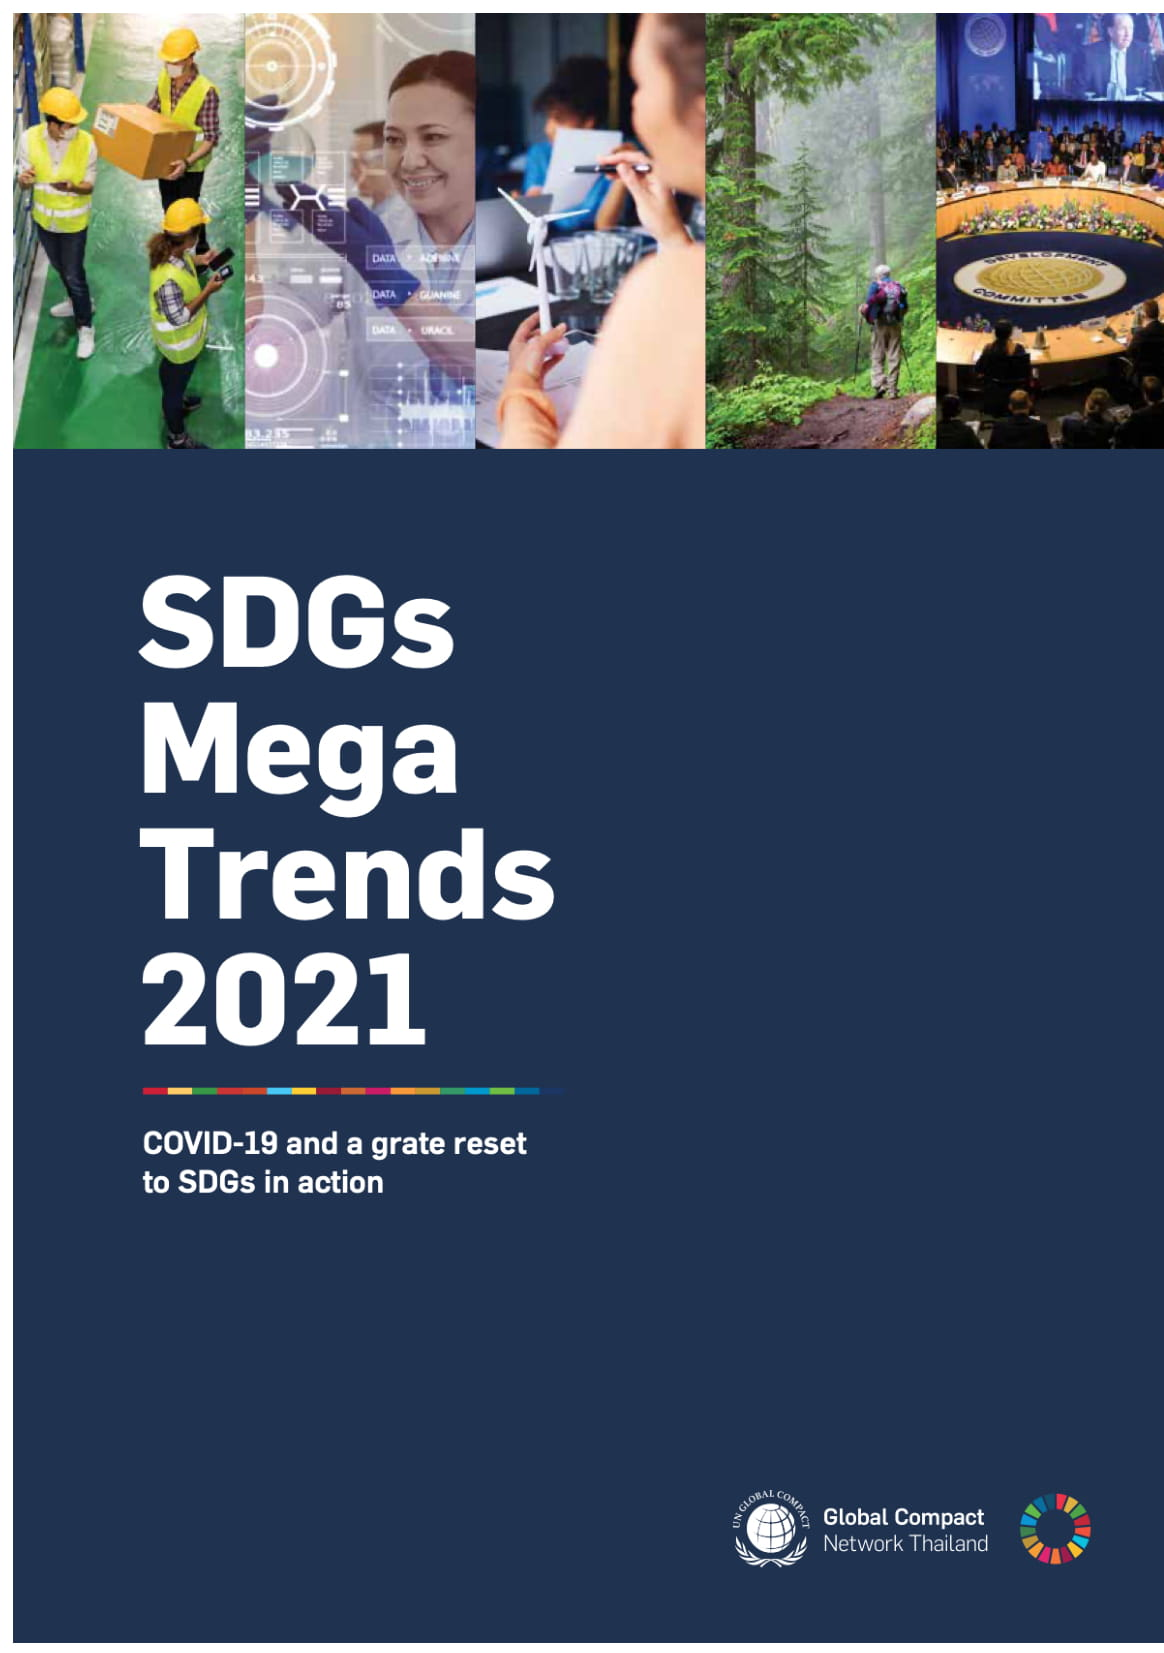 SDGs Mega Trends 2021: COVID-19 and a great reset to SDGs in action